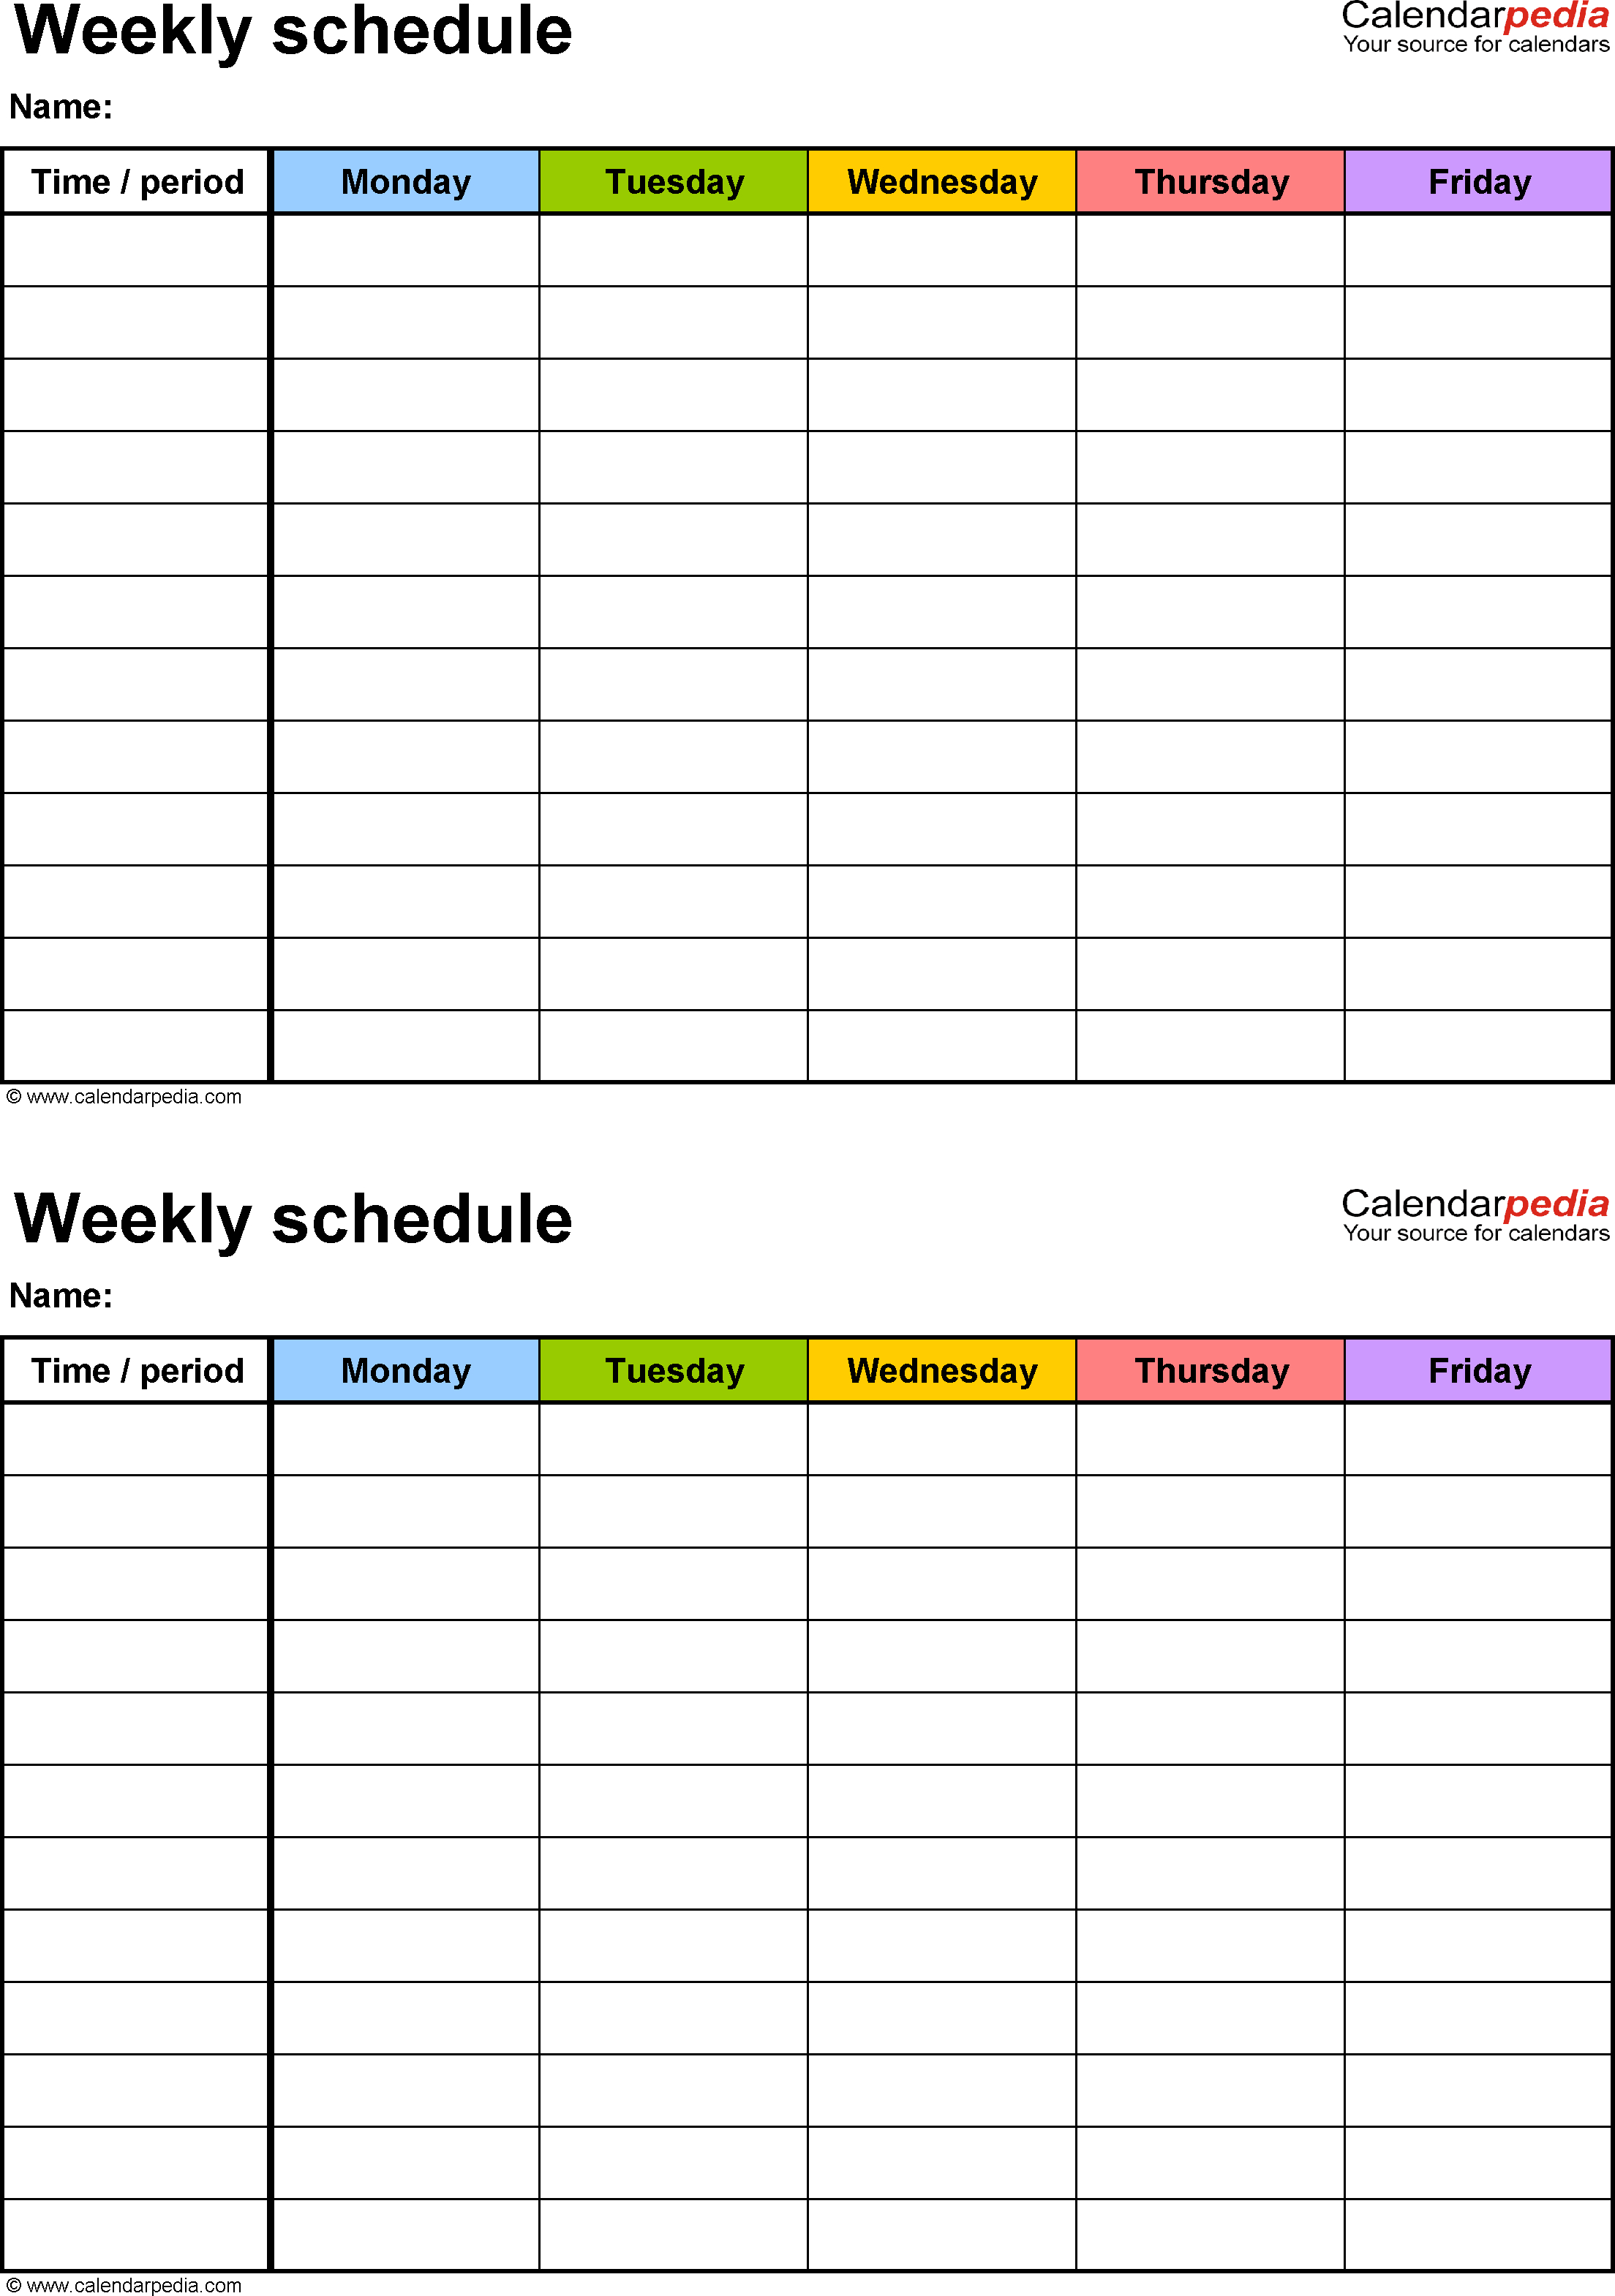 Free Weekly Schedule Templates For Excel - 18 Templates with regard to 2 Week Work Schedule Templates